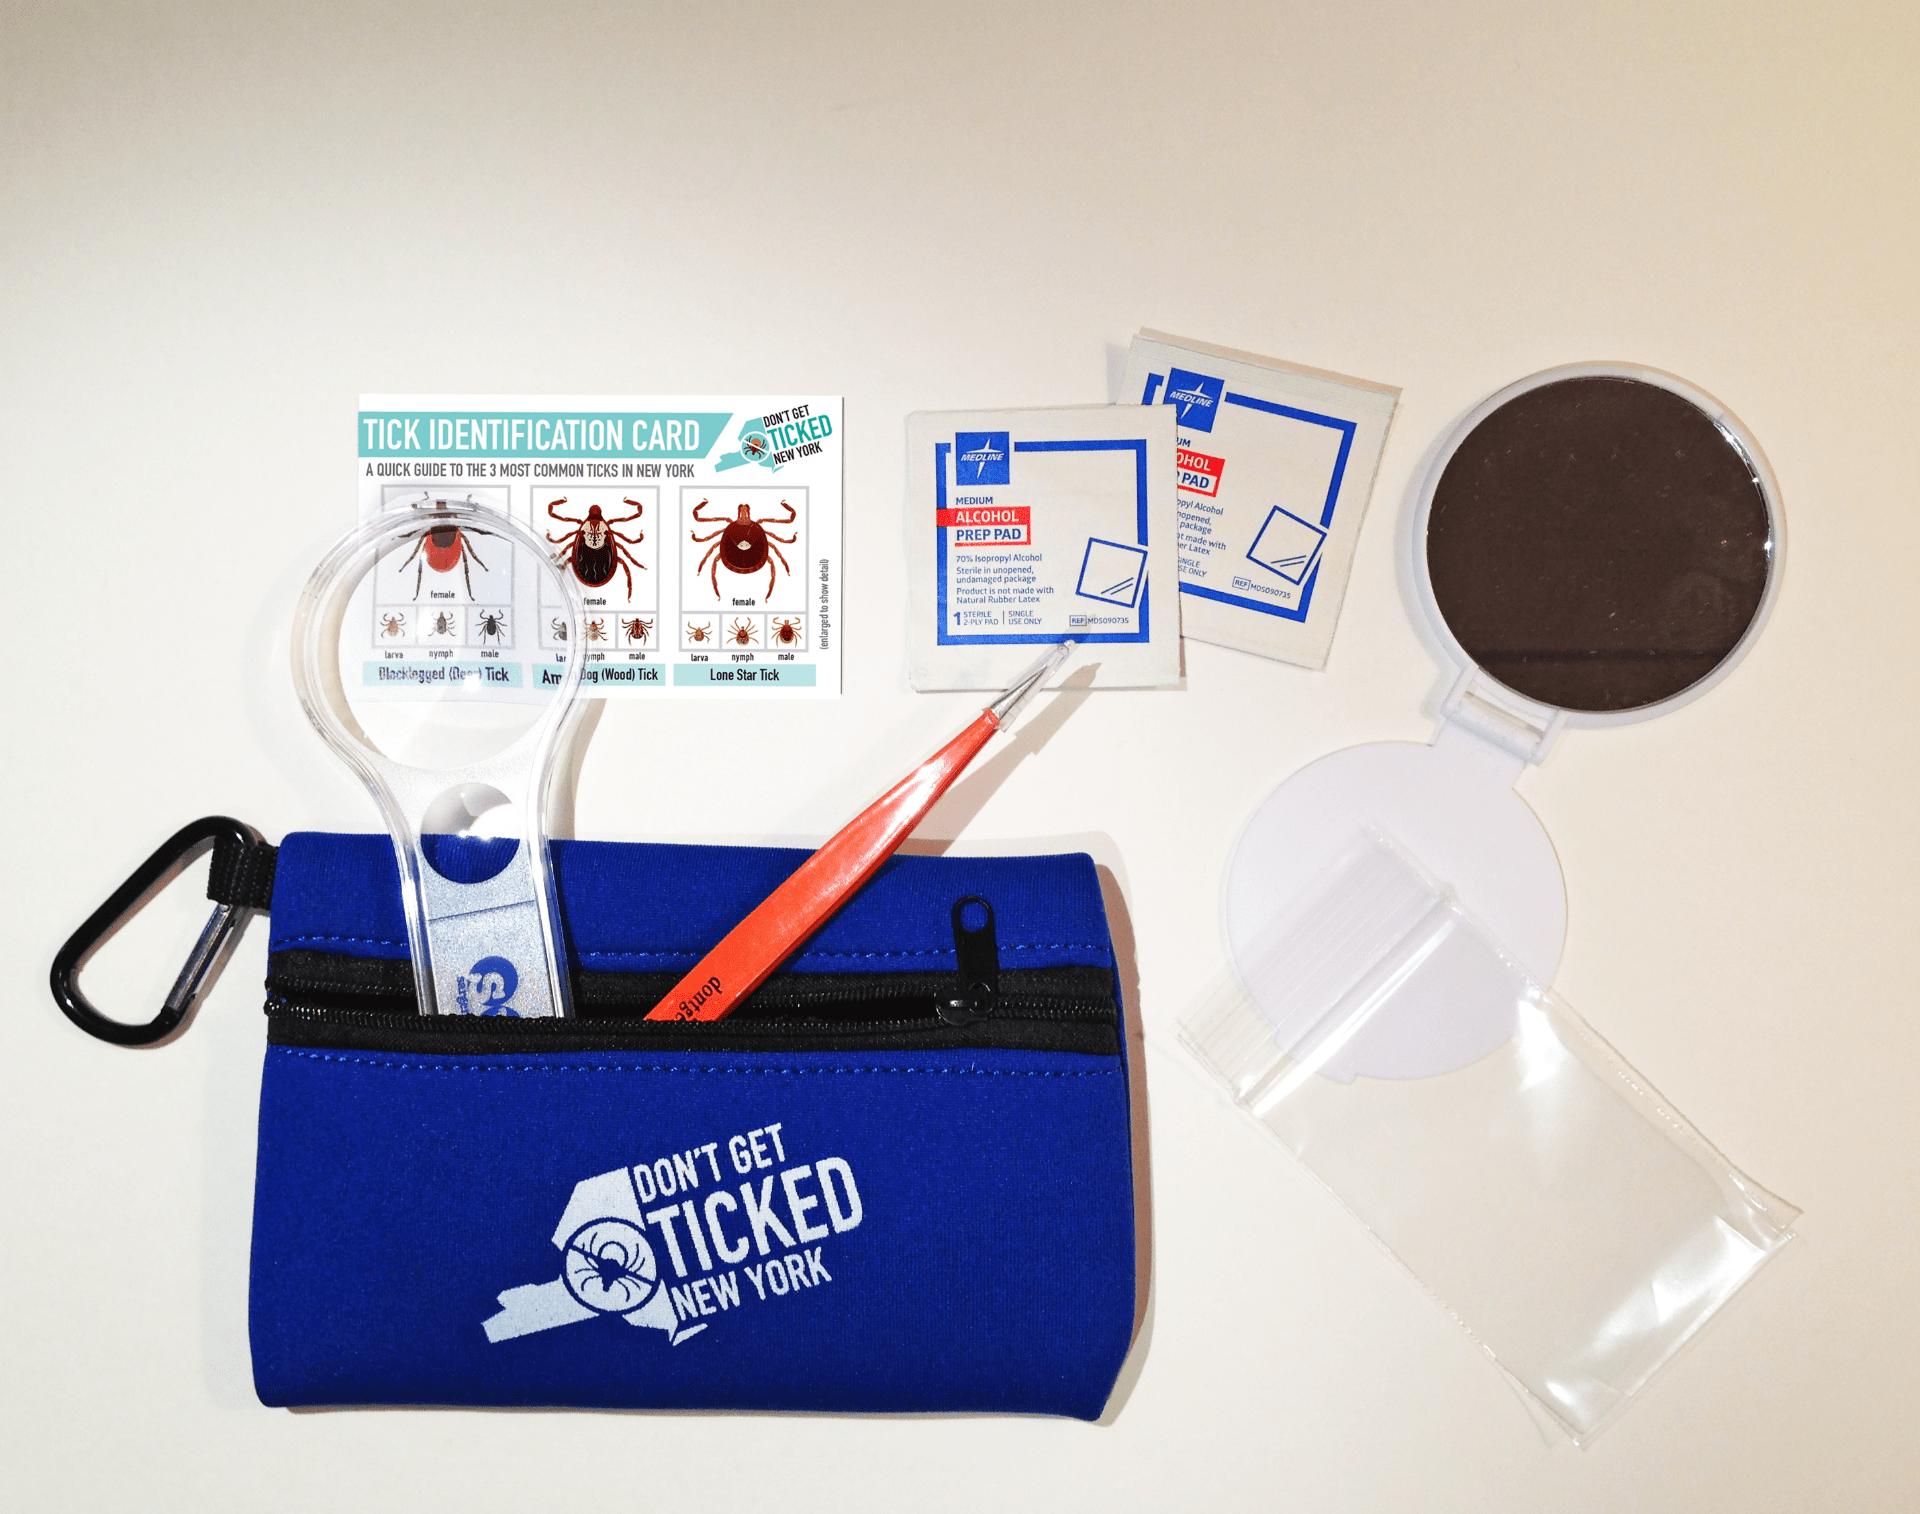 photo shows items inside a tick kit: magnifier, pointy tweezers, tick identification card, alchol swabs, small mirror for checking hard to see places, small zip loc bag to place tick in if found. All parts of a tick kit that is a small zippered pouch to keep handy when going outside.